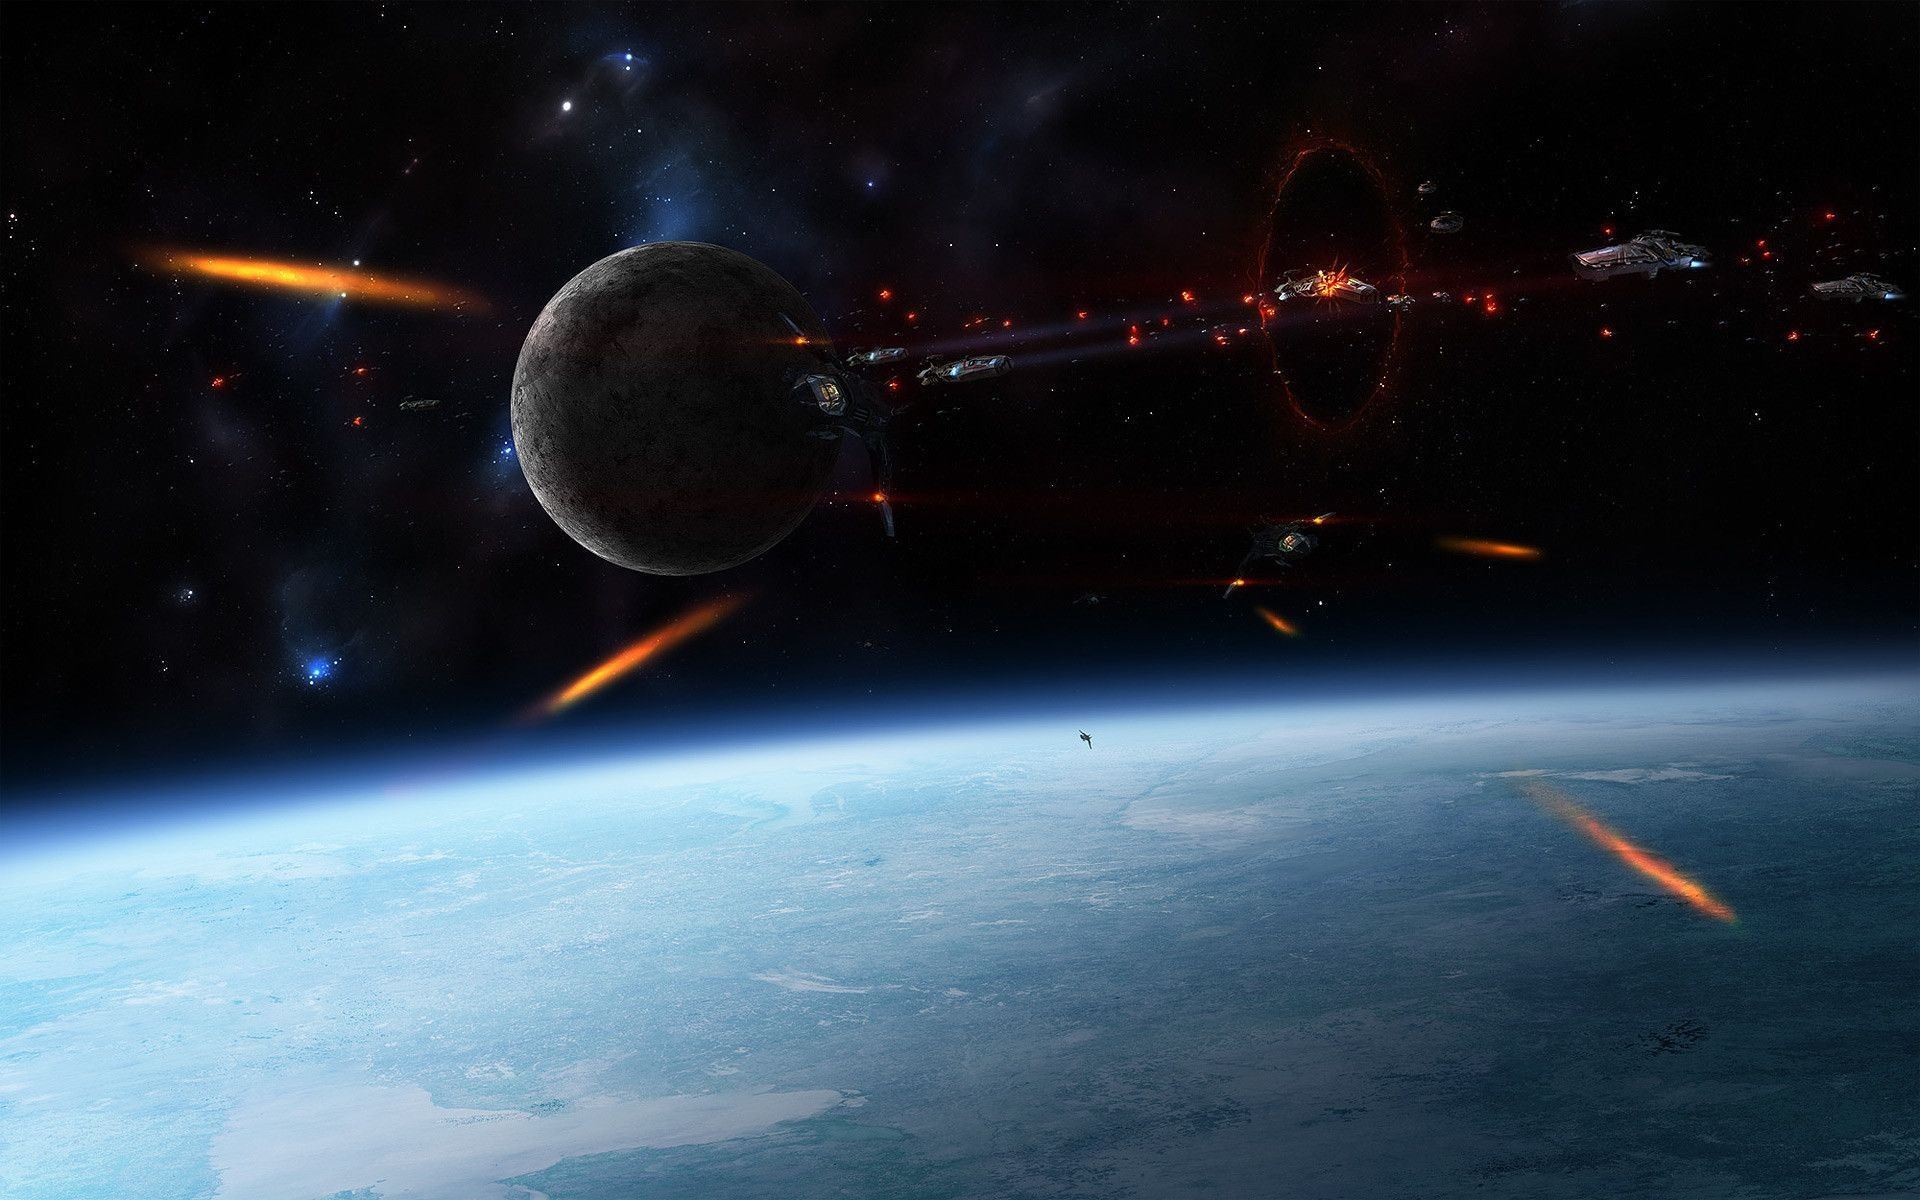 Star Wars Space Background Download Free Amazing Hd